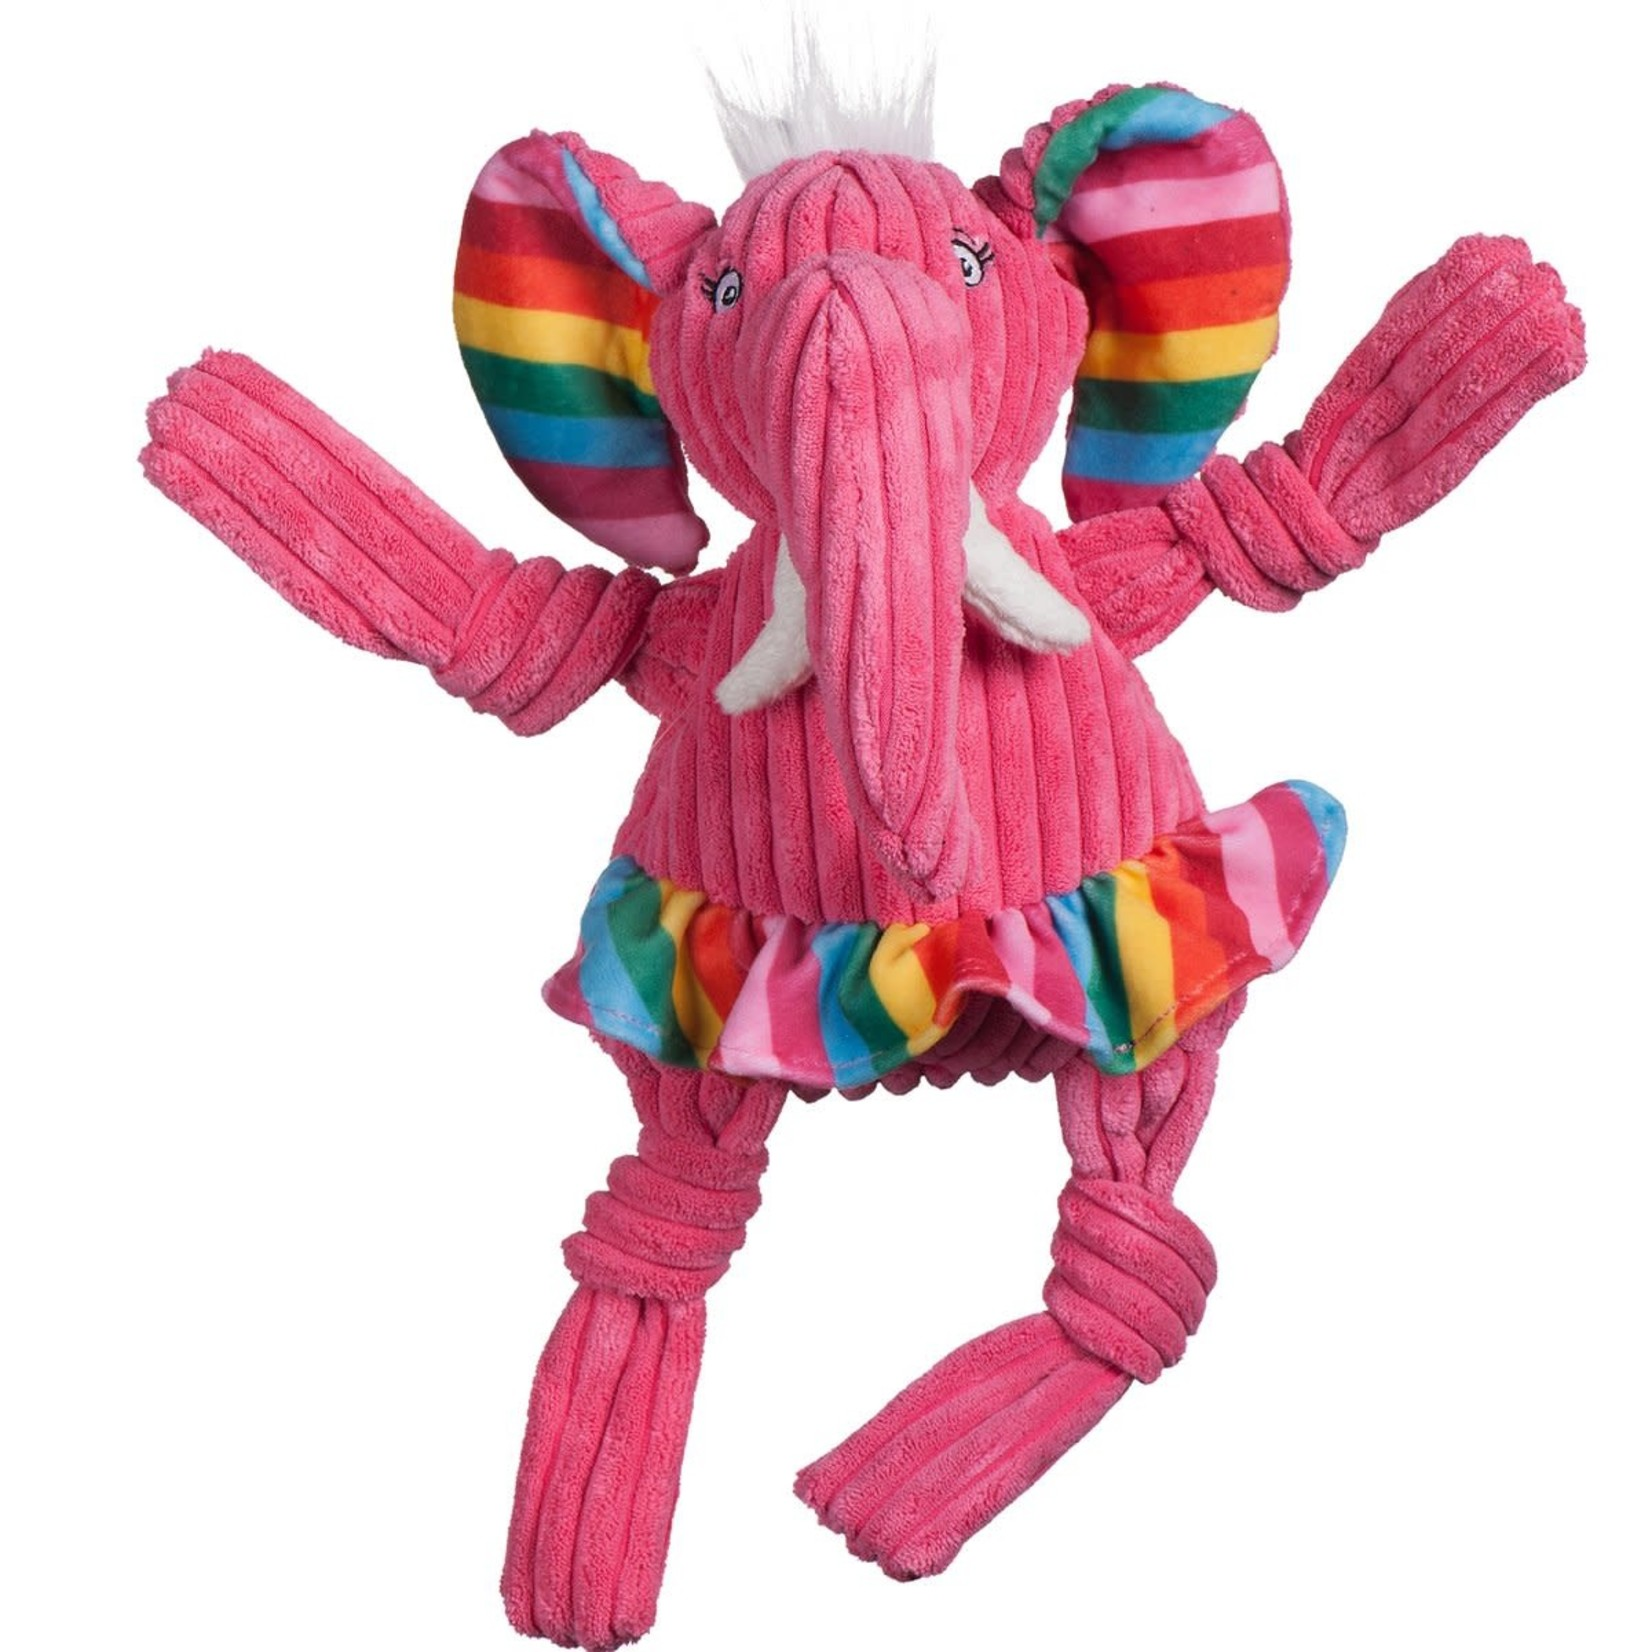 HuggleHounds Hugglehounds Dog Knotties Rainbow Elephant Large